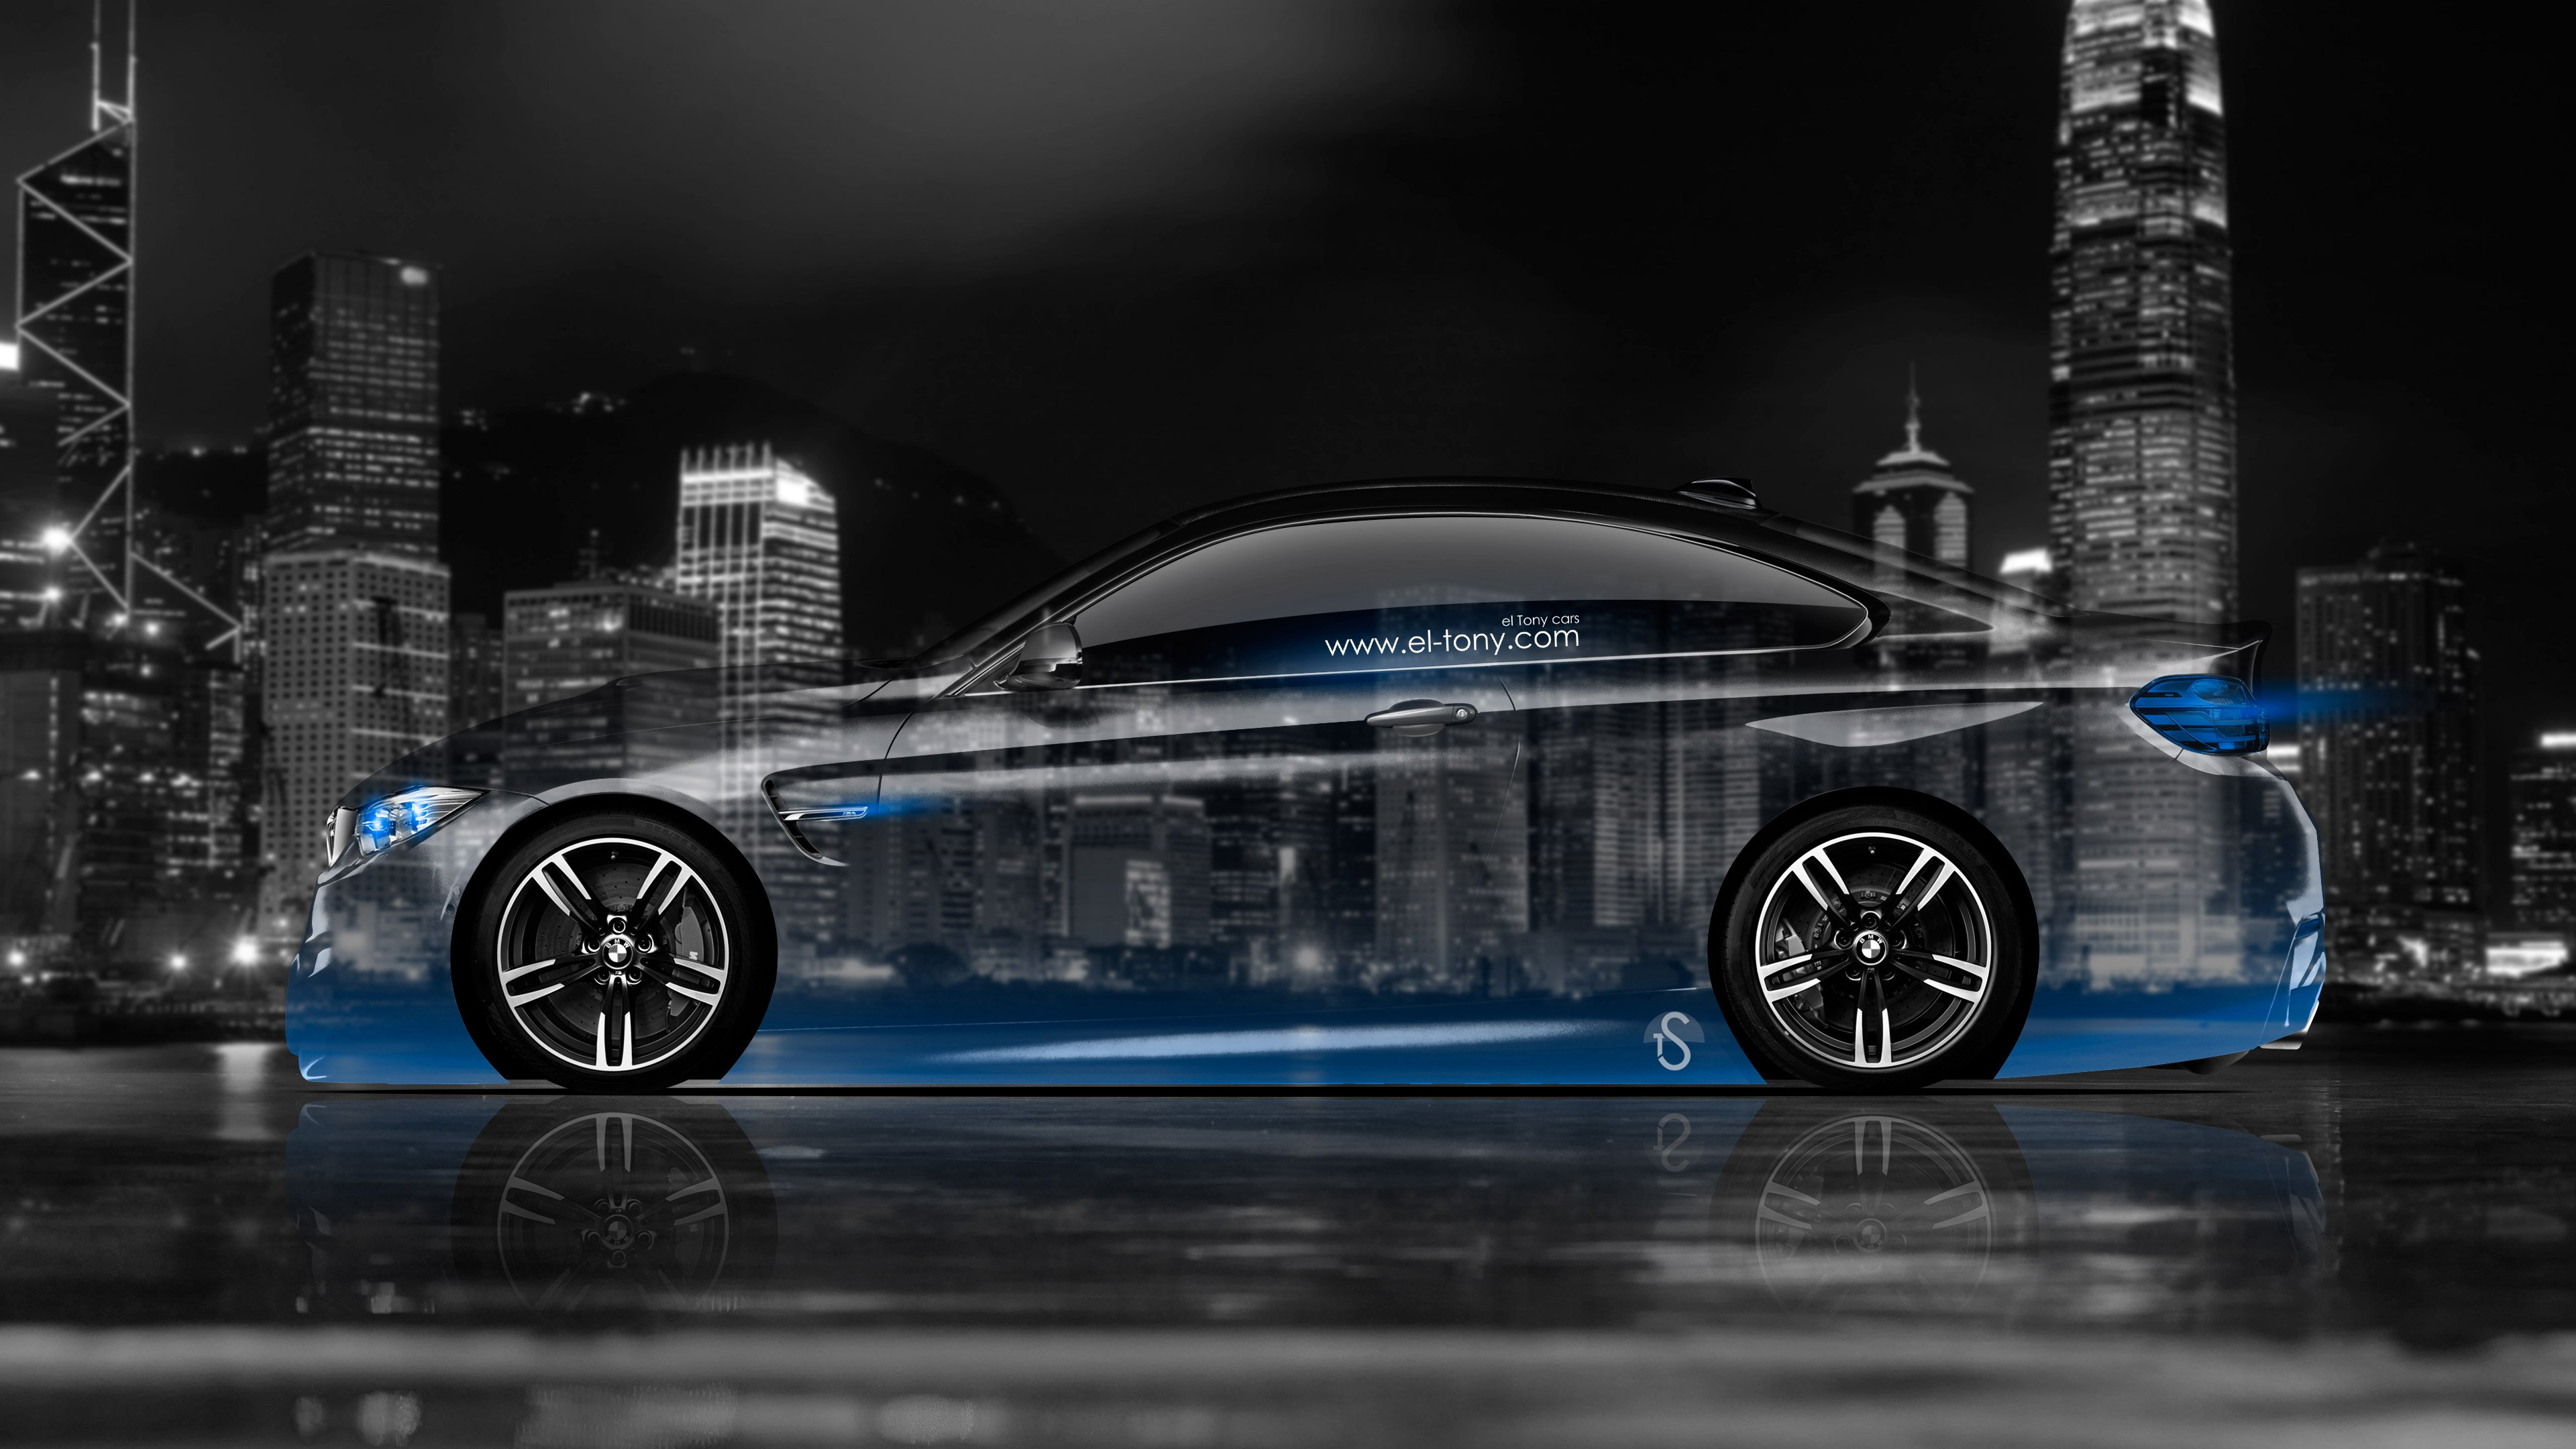 BMW M4 Coupe Side Crystal City Car 2014 Blue Neon 4K Wallpapers Design  3840x2160